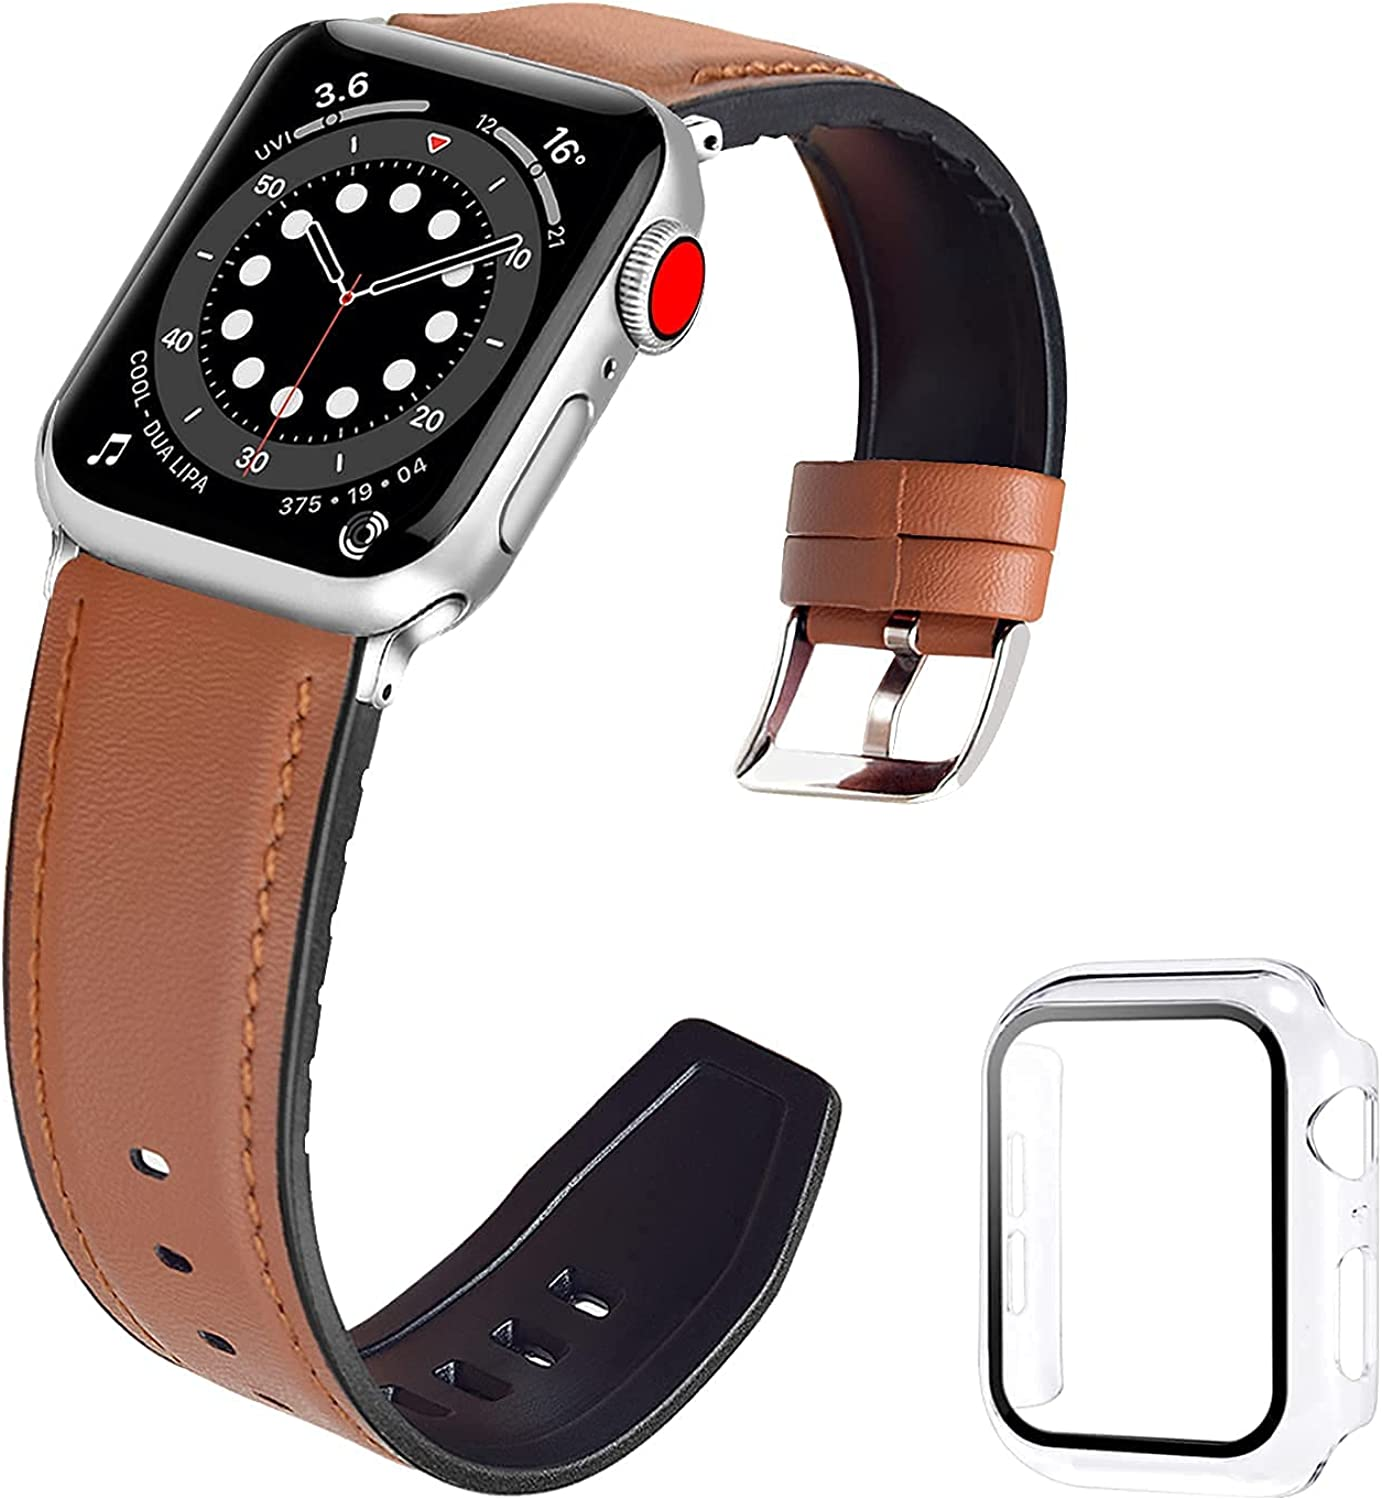 iDLEHANDS Leather Band Compatible with Apple Watch Band 38mm 40mm 42mm 44mm, Soft Leather with Silicone Replacement Wristband Strap for Men Women iWatch Series 6 5 4 3 2 1 SE